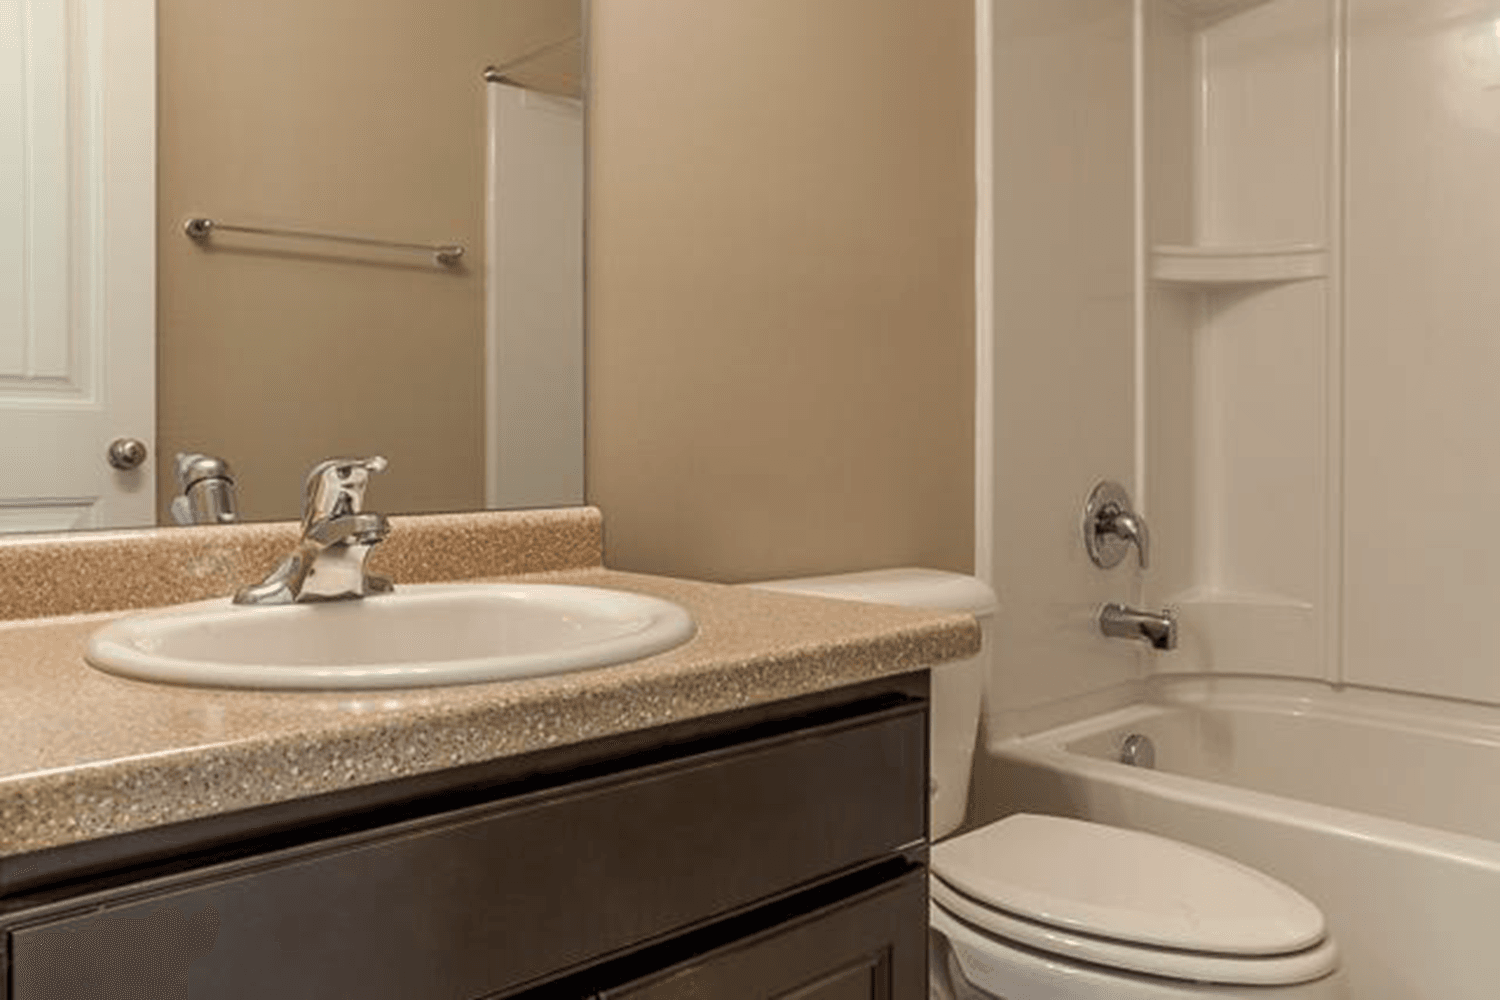 Bathroom featured in The Atlanta (Build on your lot) By Lamar Smith Homes in Savannah, GA